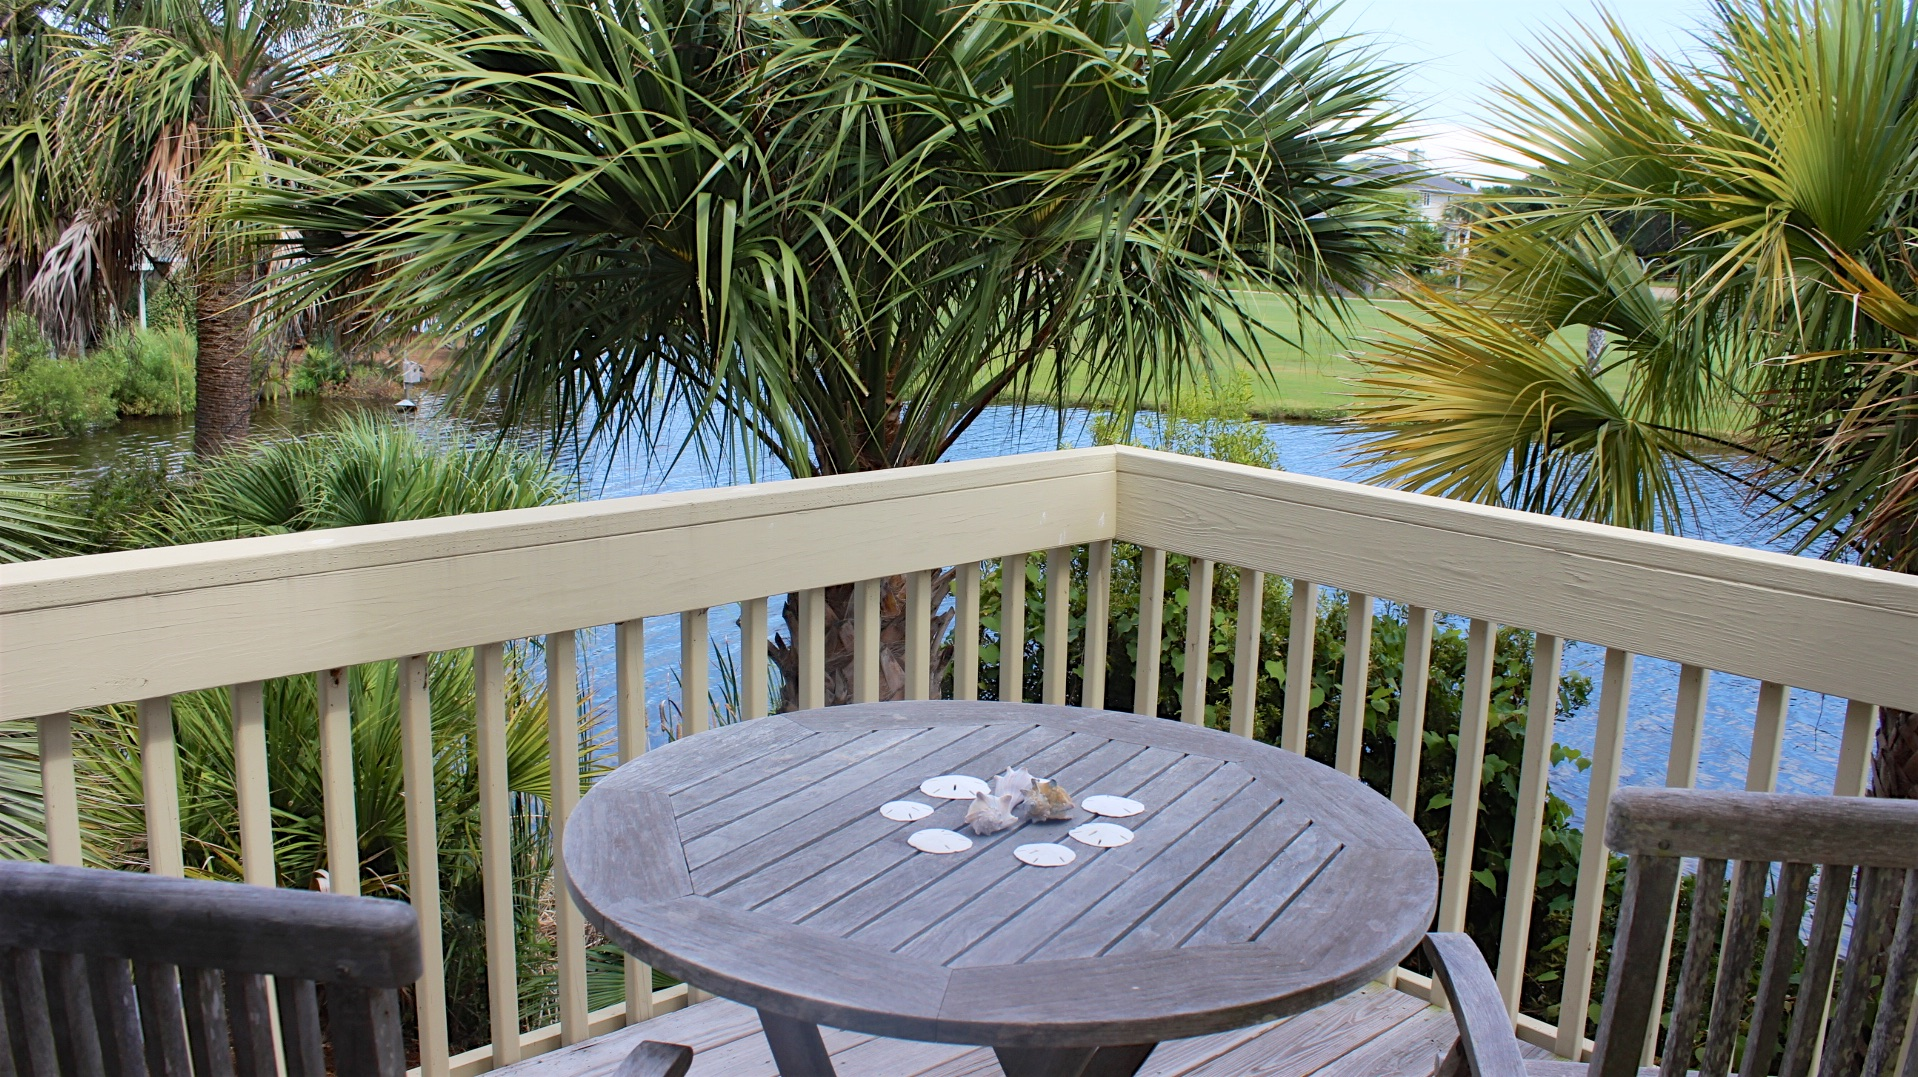 The deck off the master bedroom has lagoon views and is surrounded by palm trees.